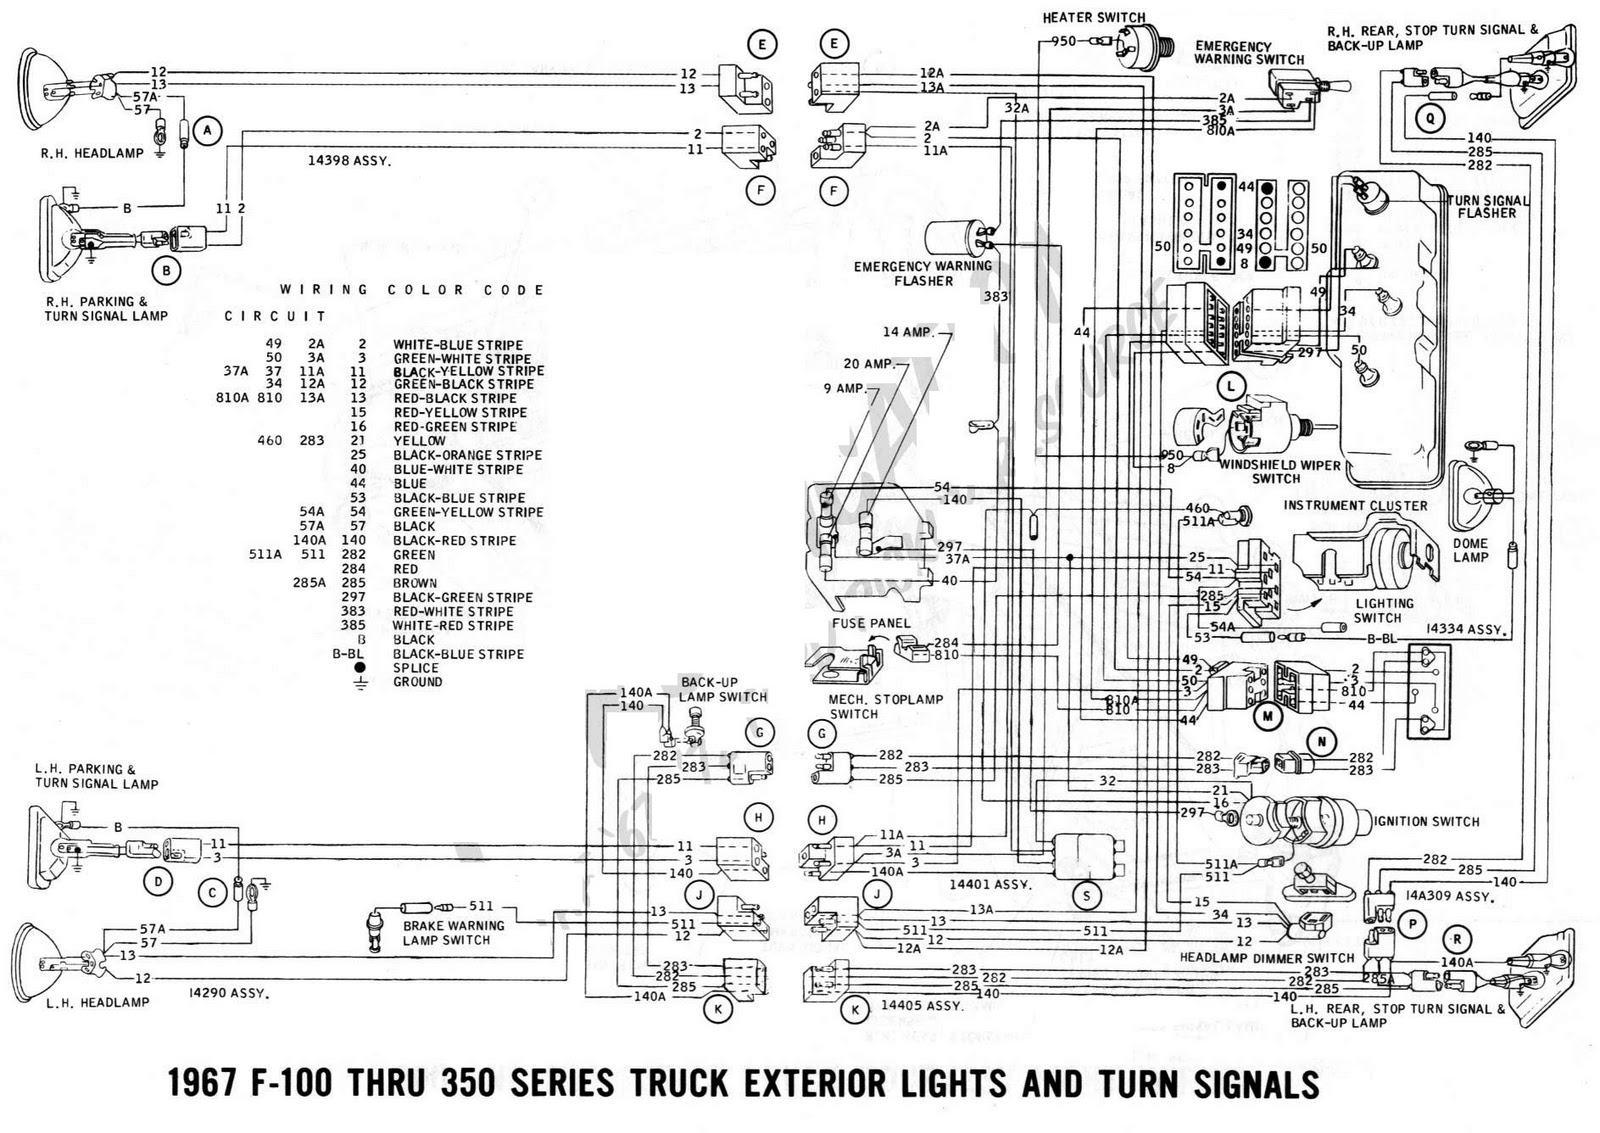 1997 v8 4 6 f150 fuse color code diagram html